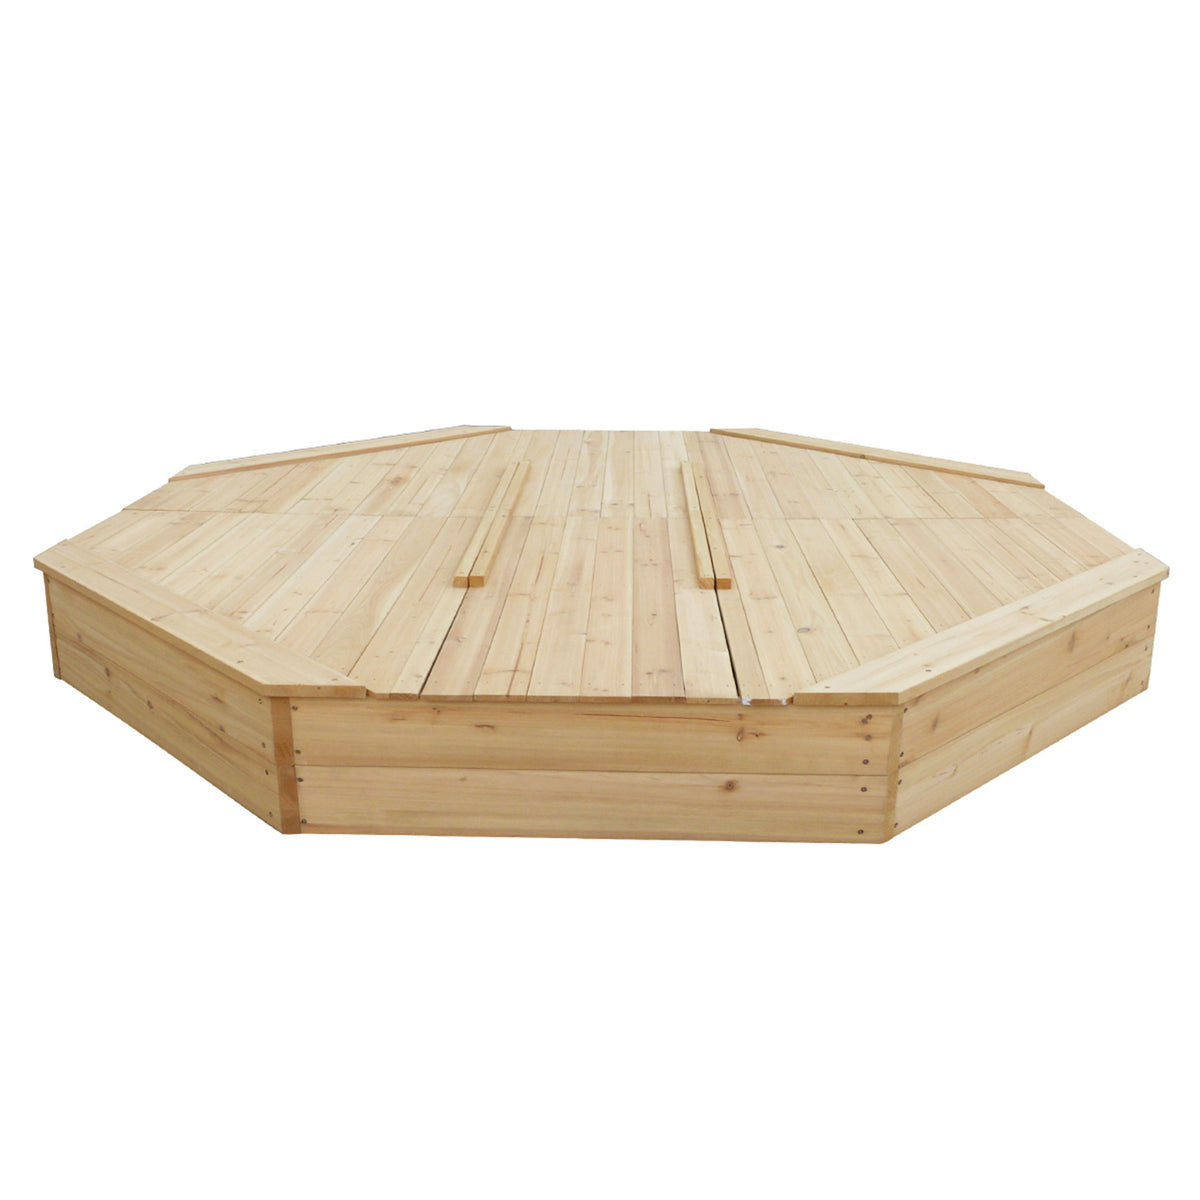 Lifespan Kids Large Octagonal Sandpit with Cover